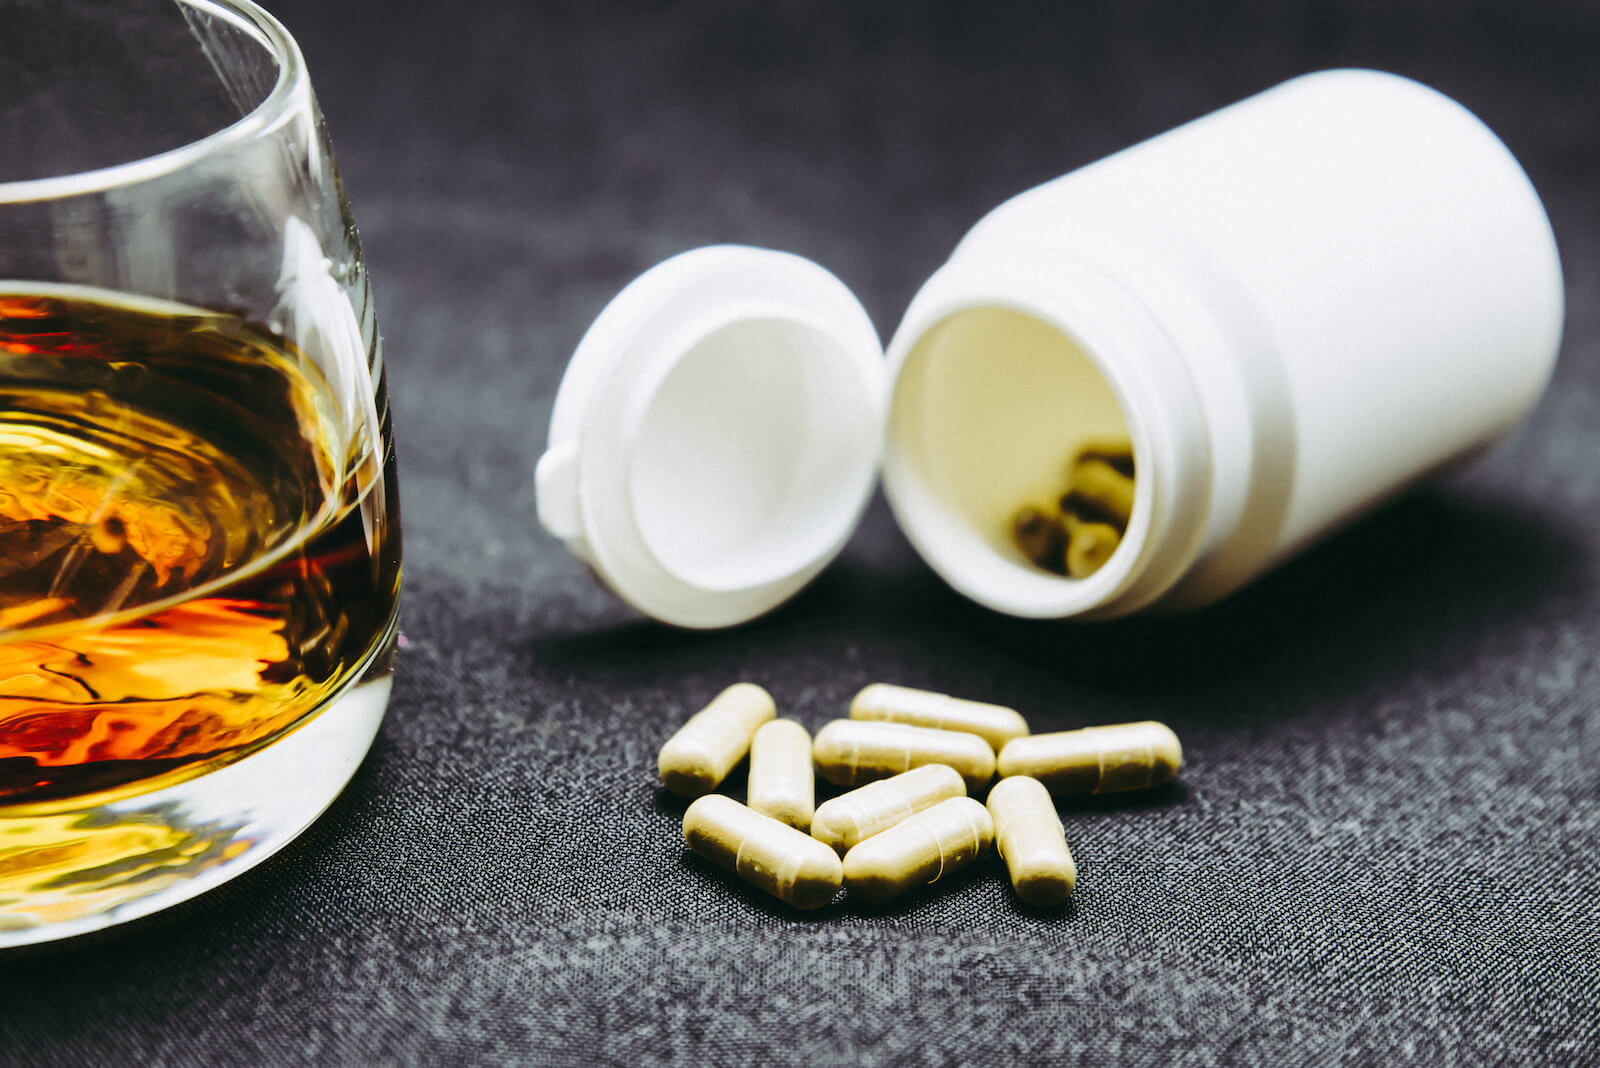 Falling asleep while driving: pills and alcohol